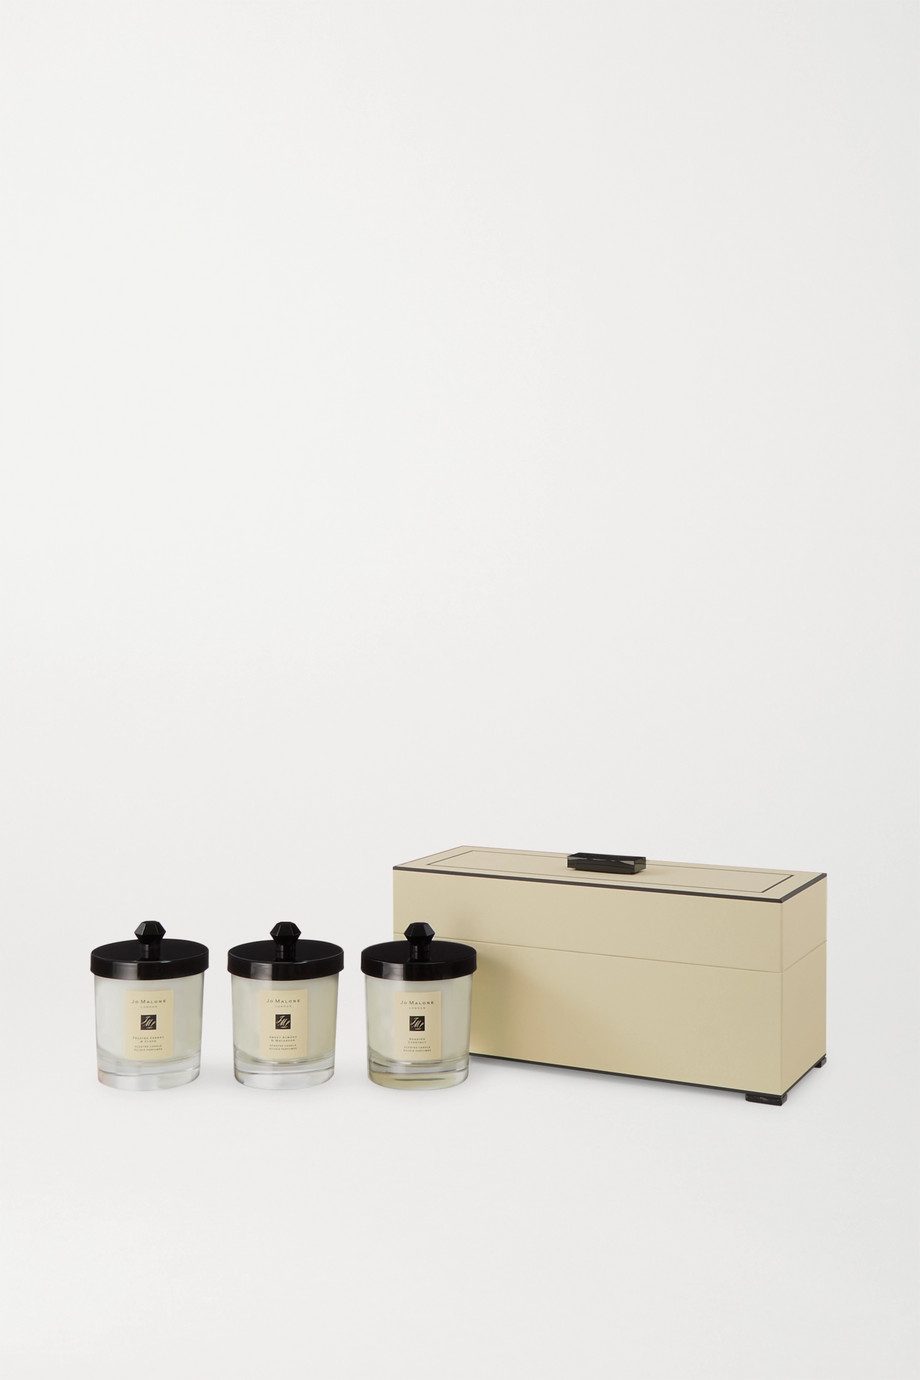 Jo Malone London Decorated Home Candle Collection, 3 x 200g